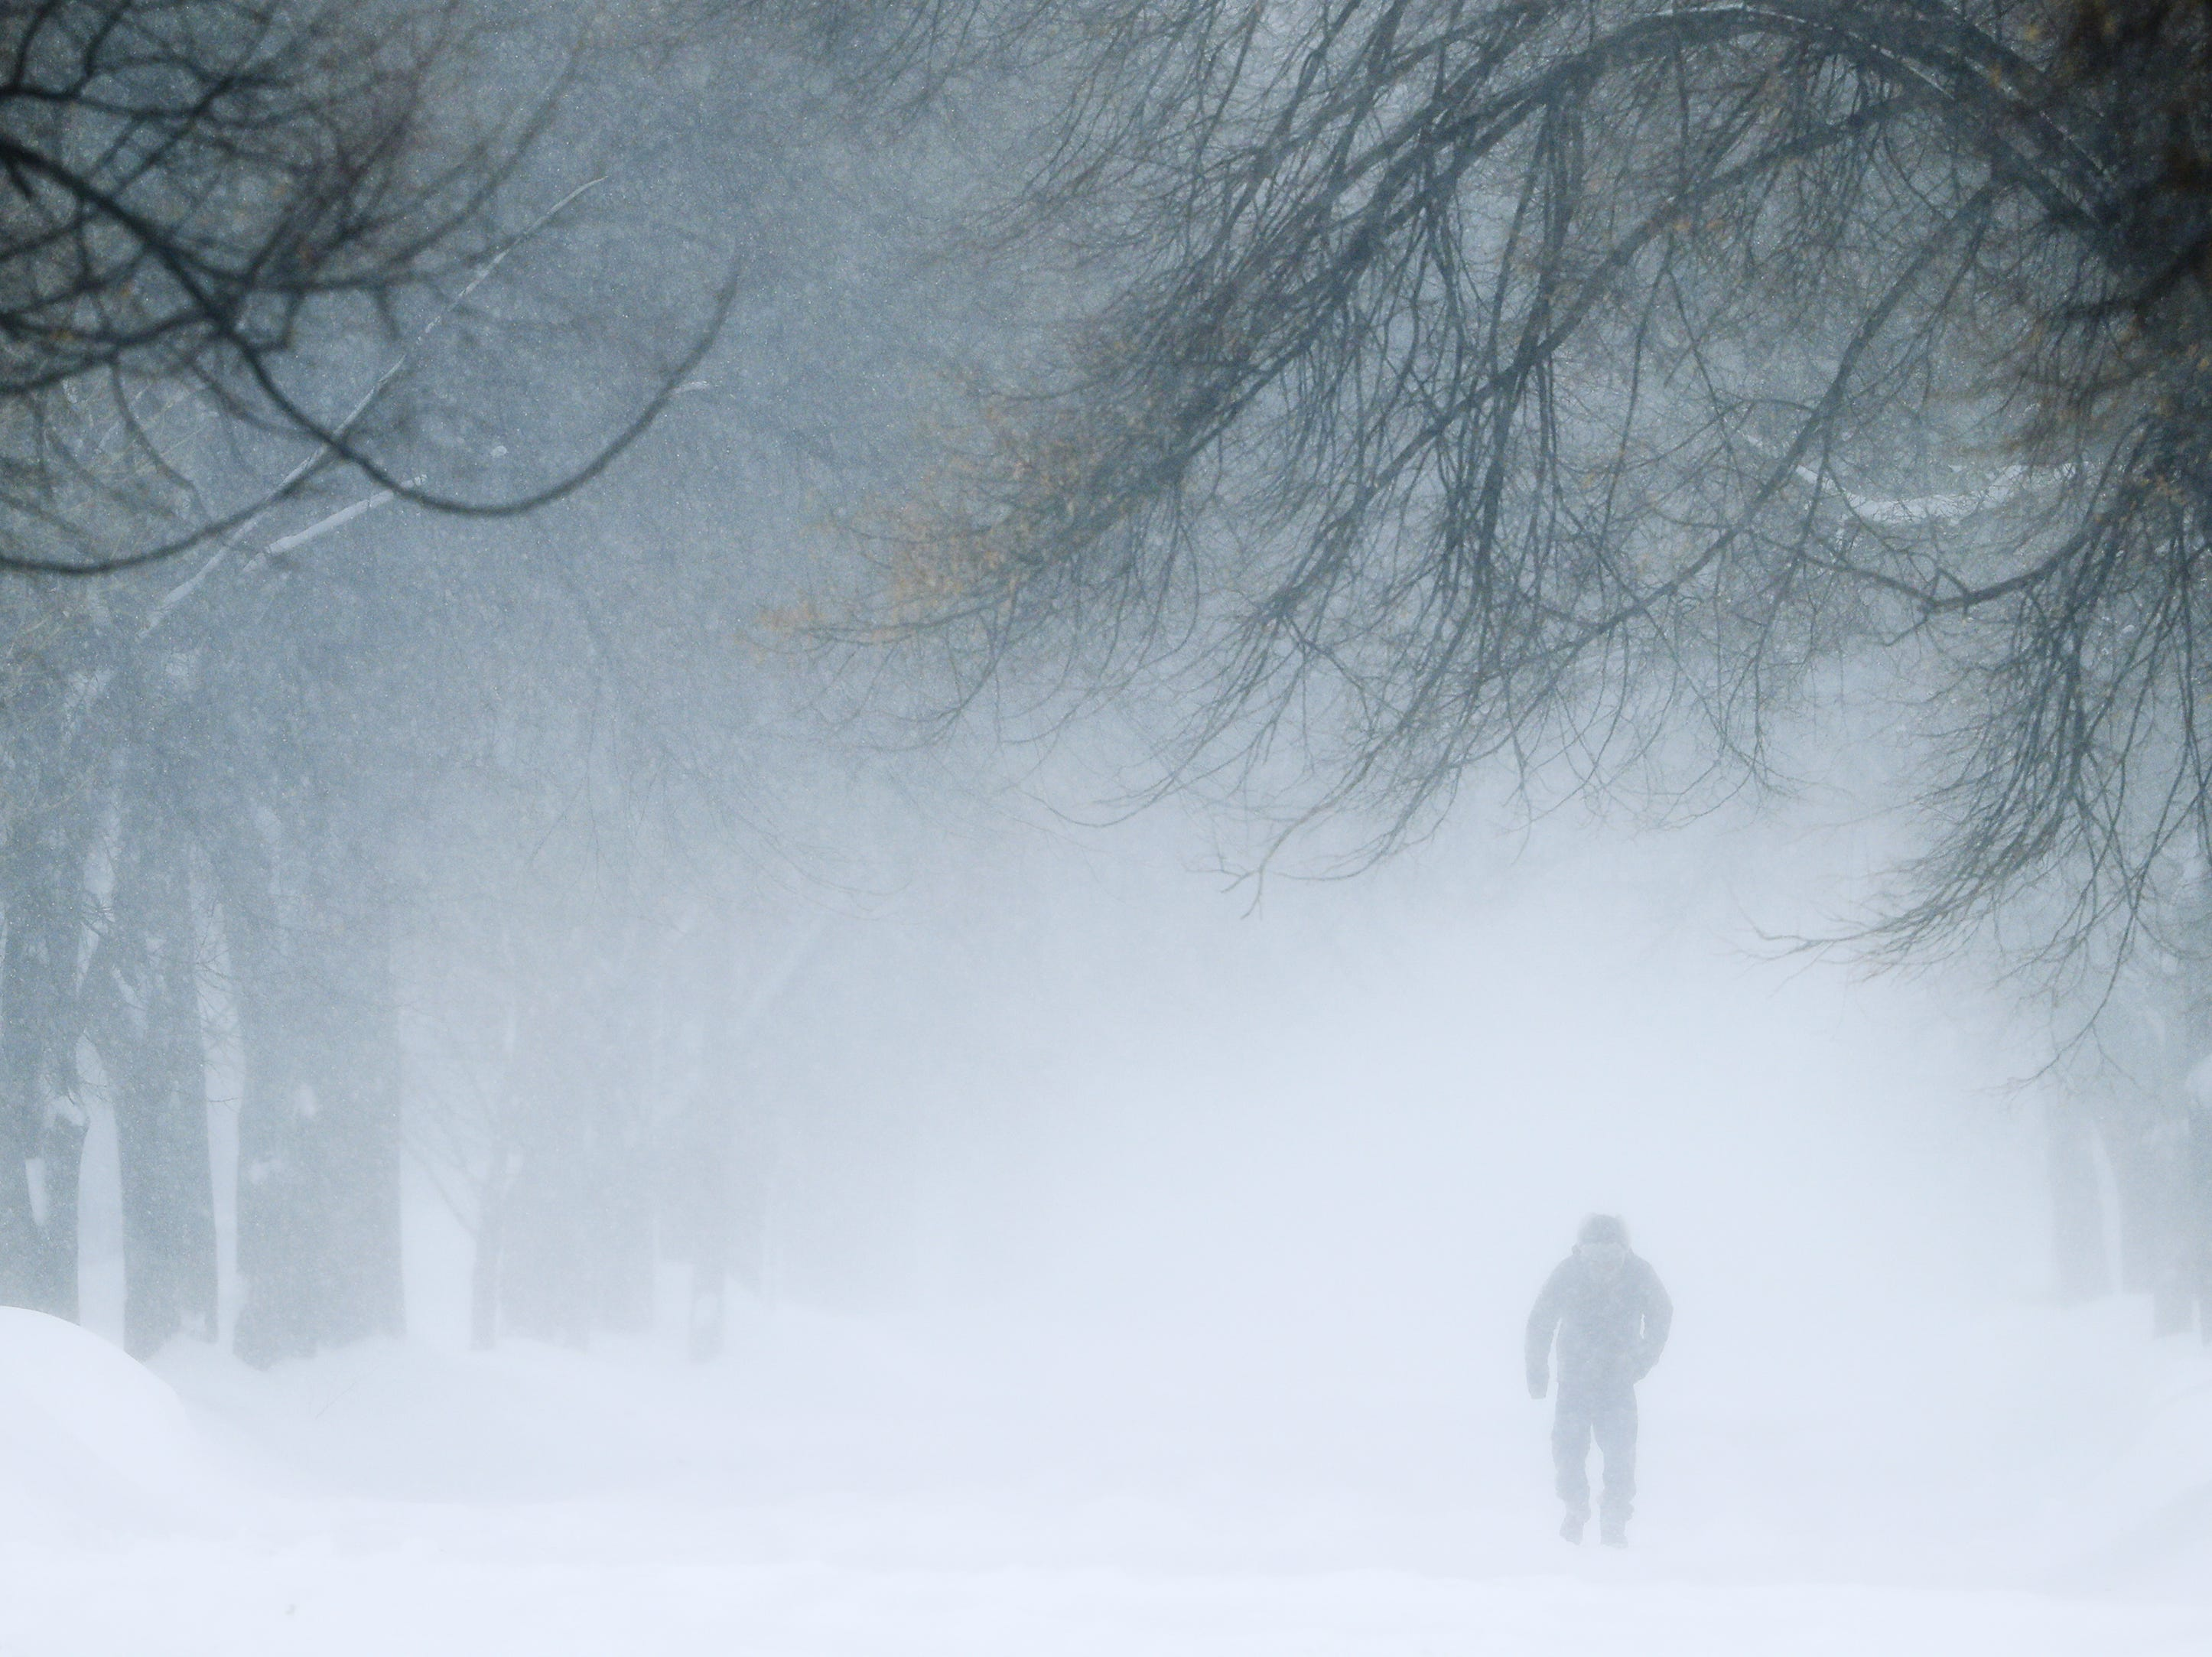 A man walks along a residential street during a snowstorm on Monday, Jan. 28, 2019 in Green Bay, Wis.